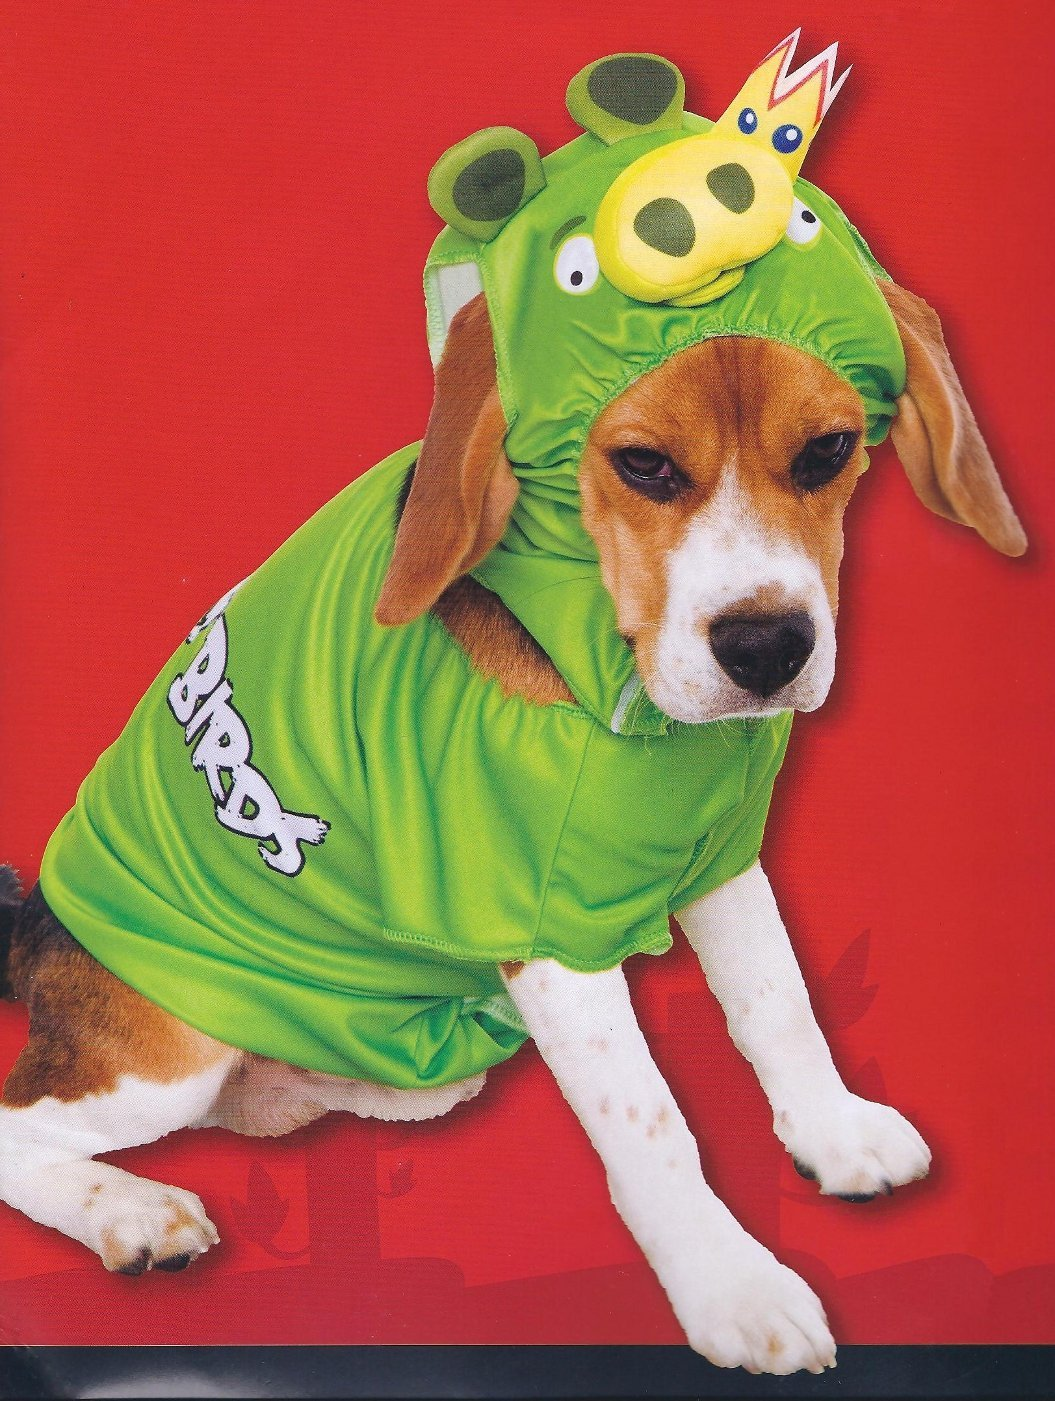 Top 10 dog costumes you can buy at the store fuzzy today 81li2nt53dlsl1401 solutioingenieria Choice Image